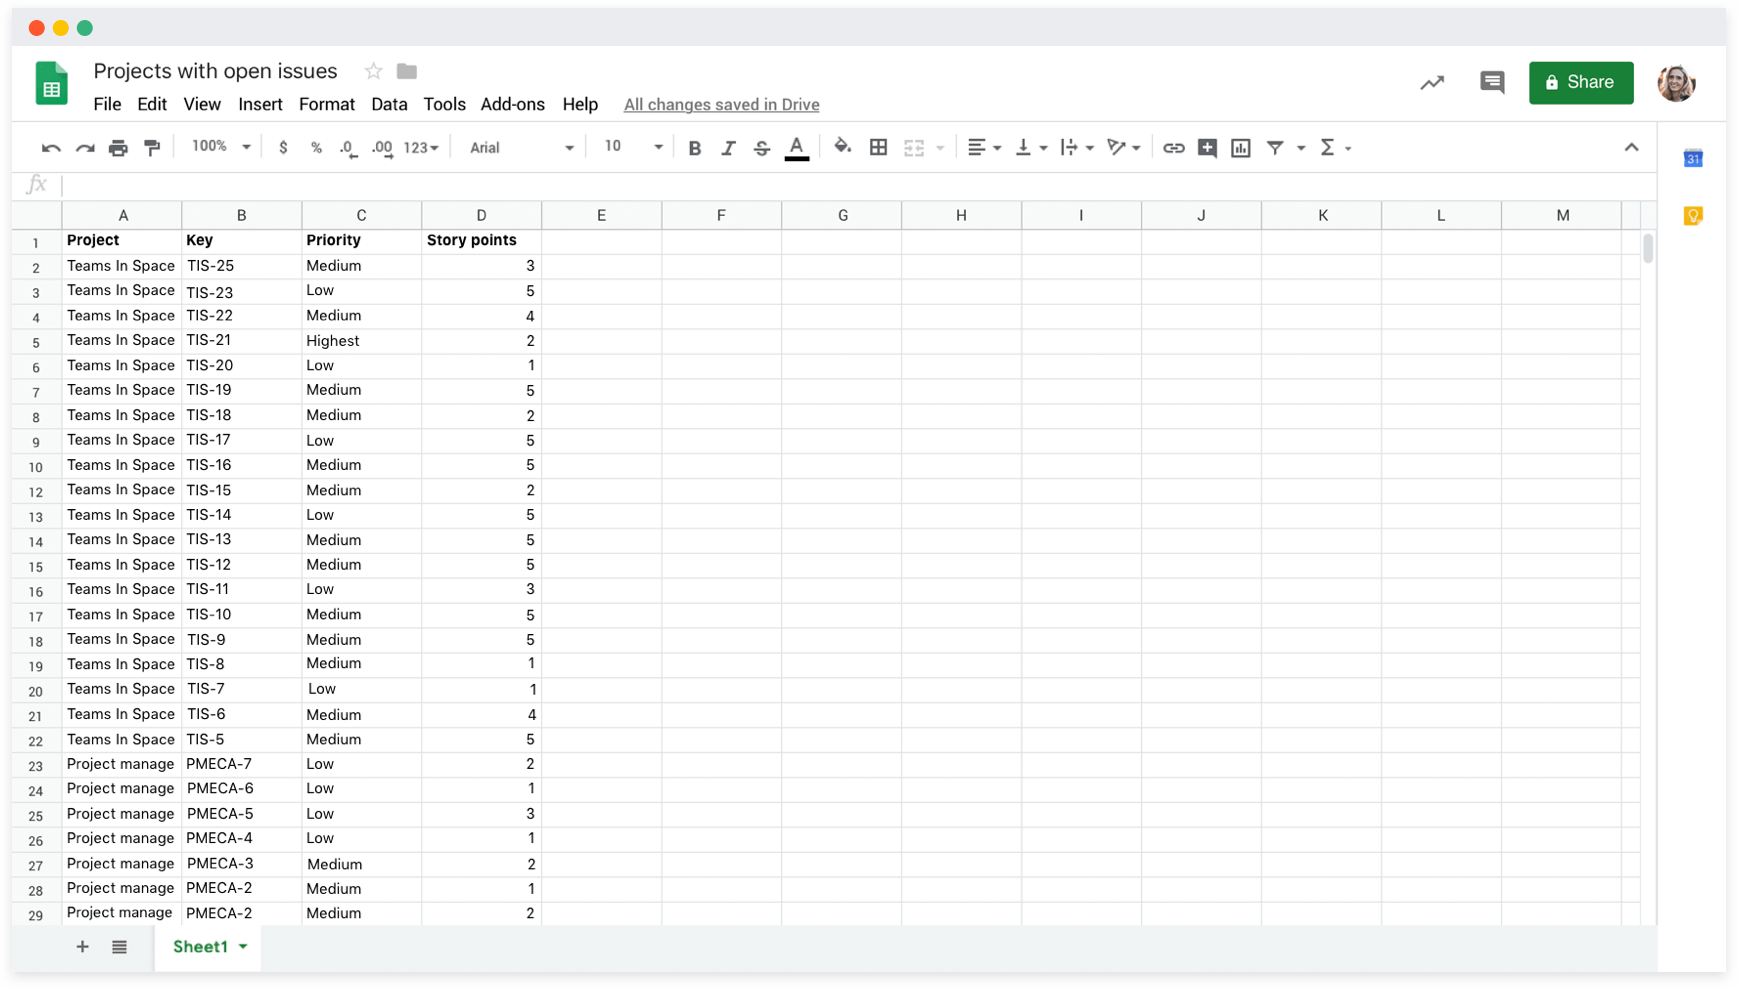 Build custom reports with Jira data in Google Sheets